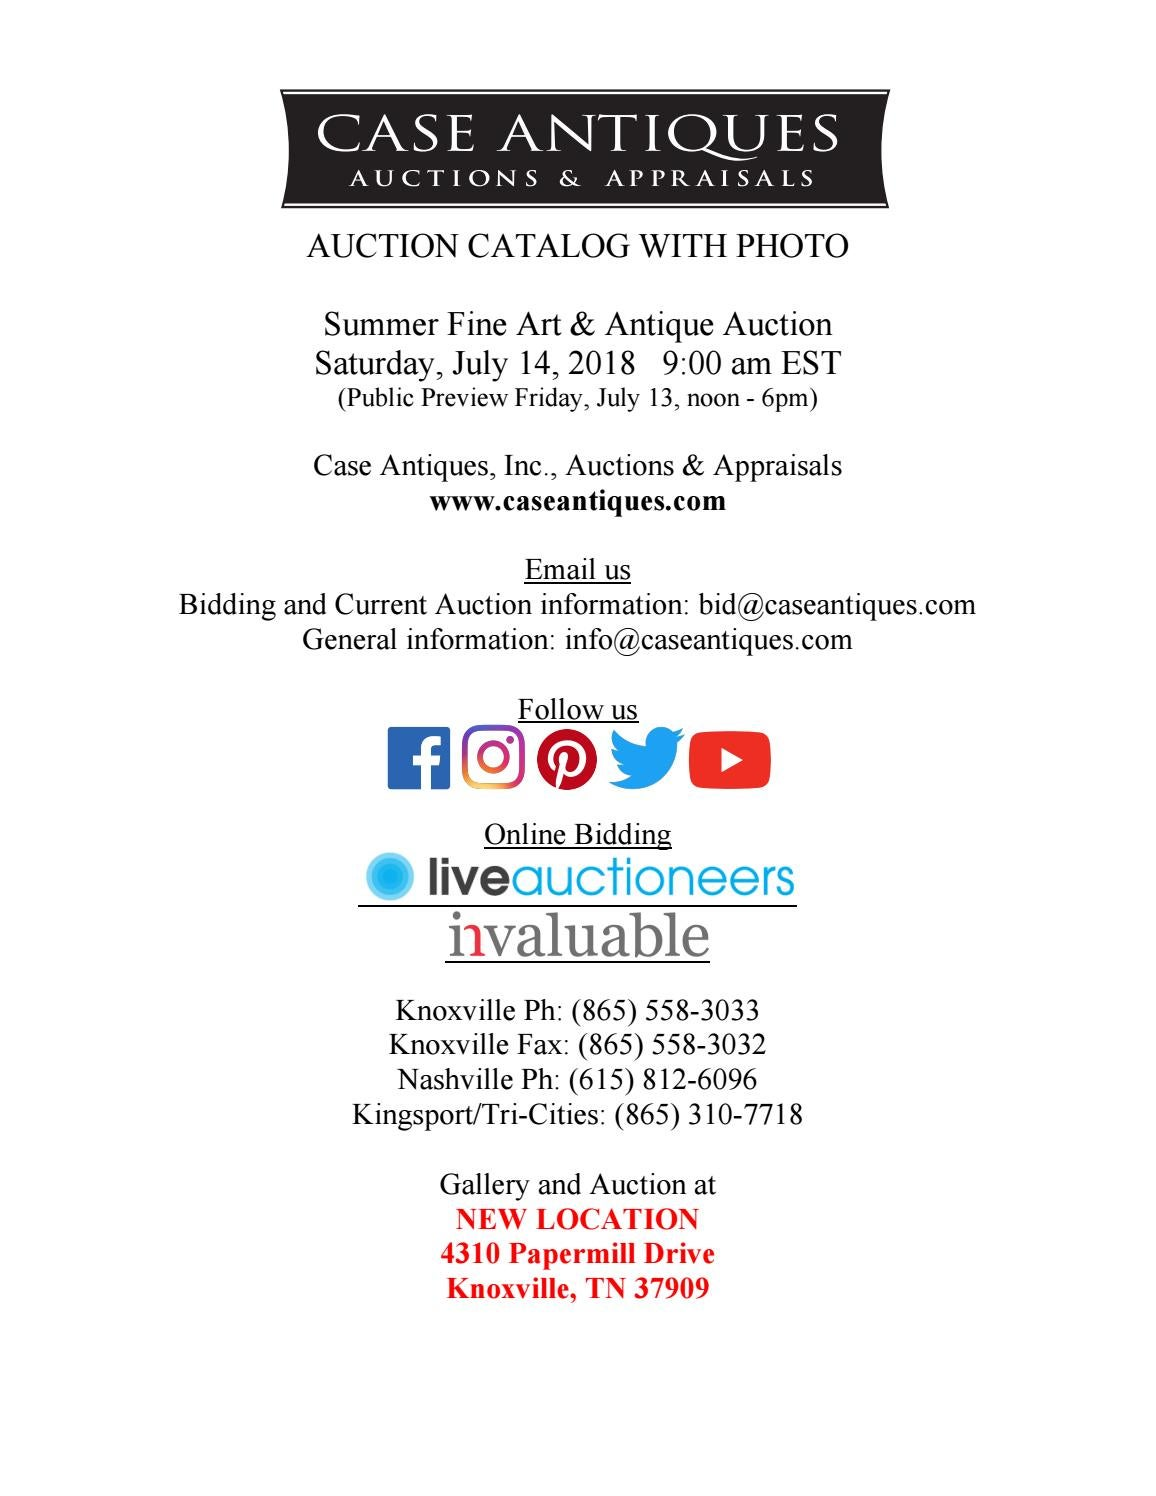 Historic Summer Fine Art And Antiques Auction By Case Antiques Inc Auctions Appraisals Issuu